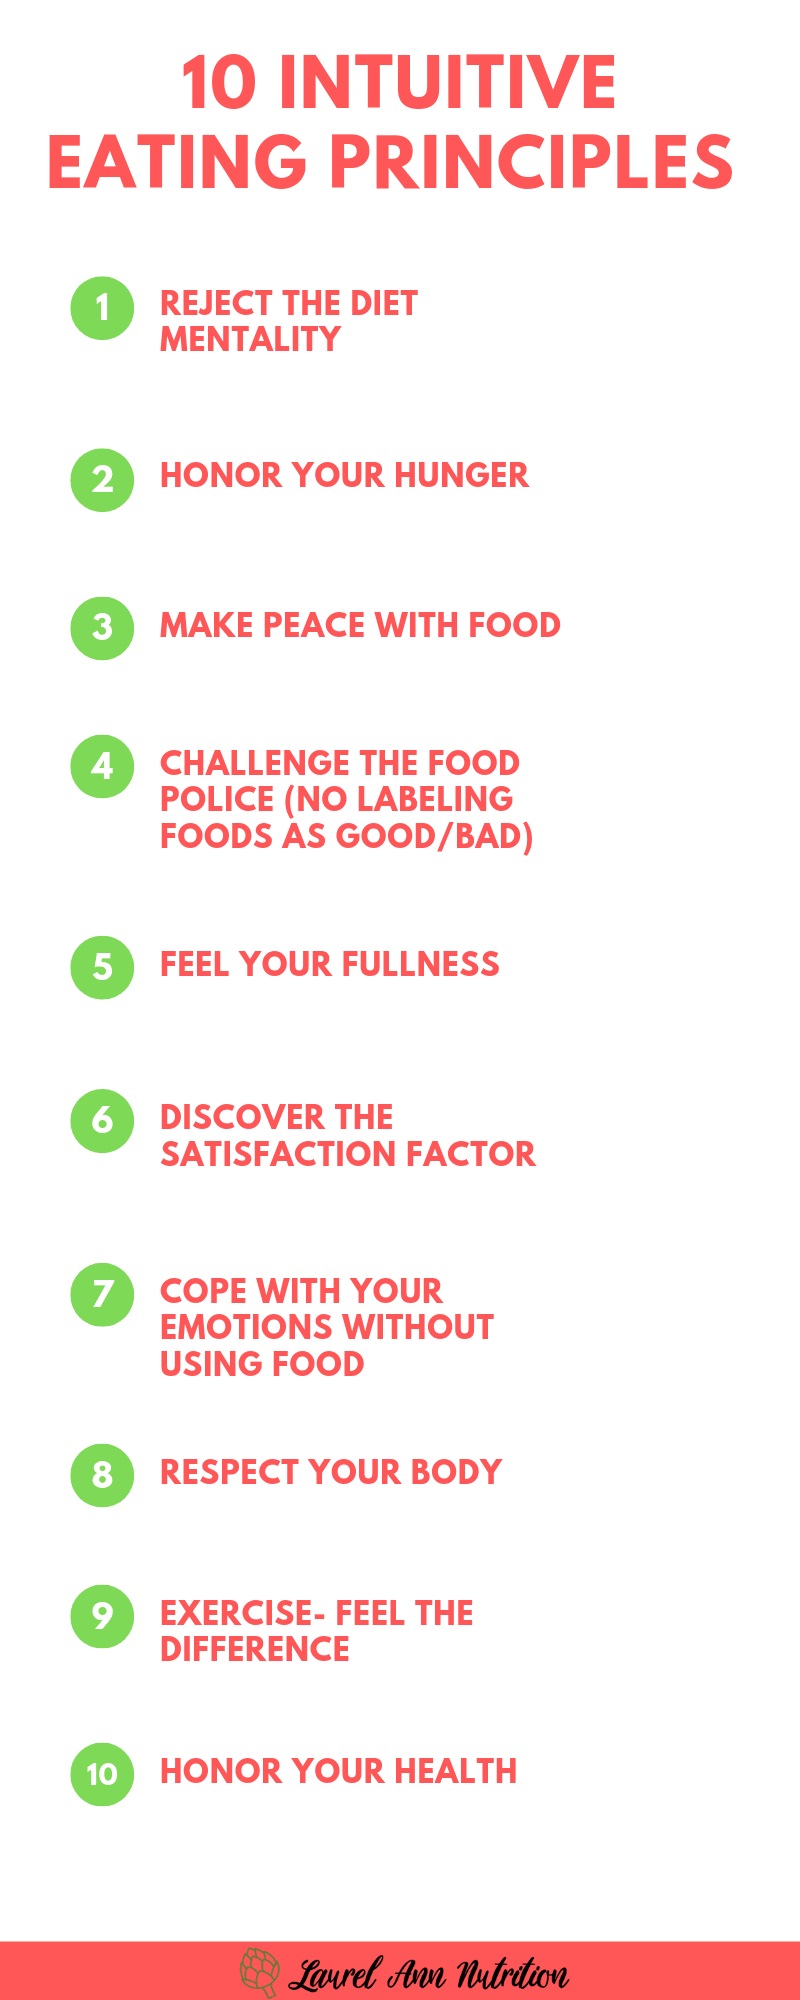 10 intuitive eating principles